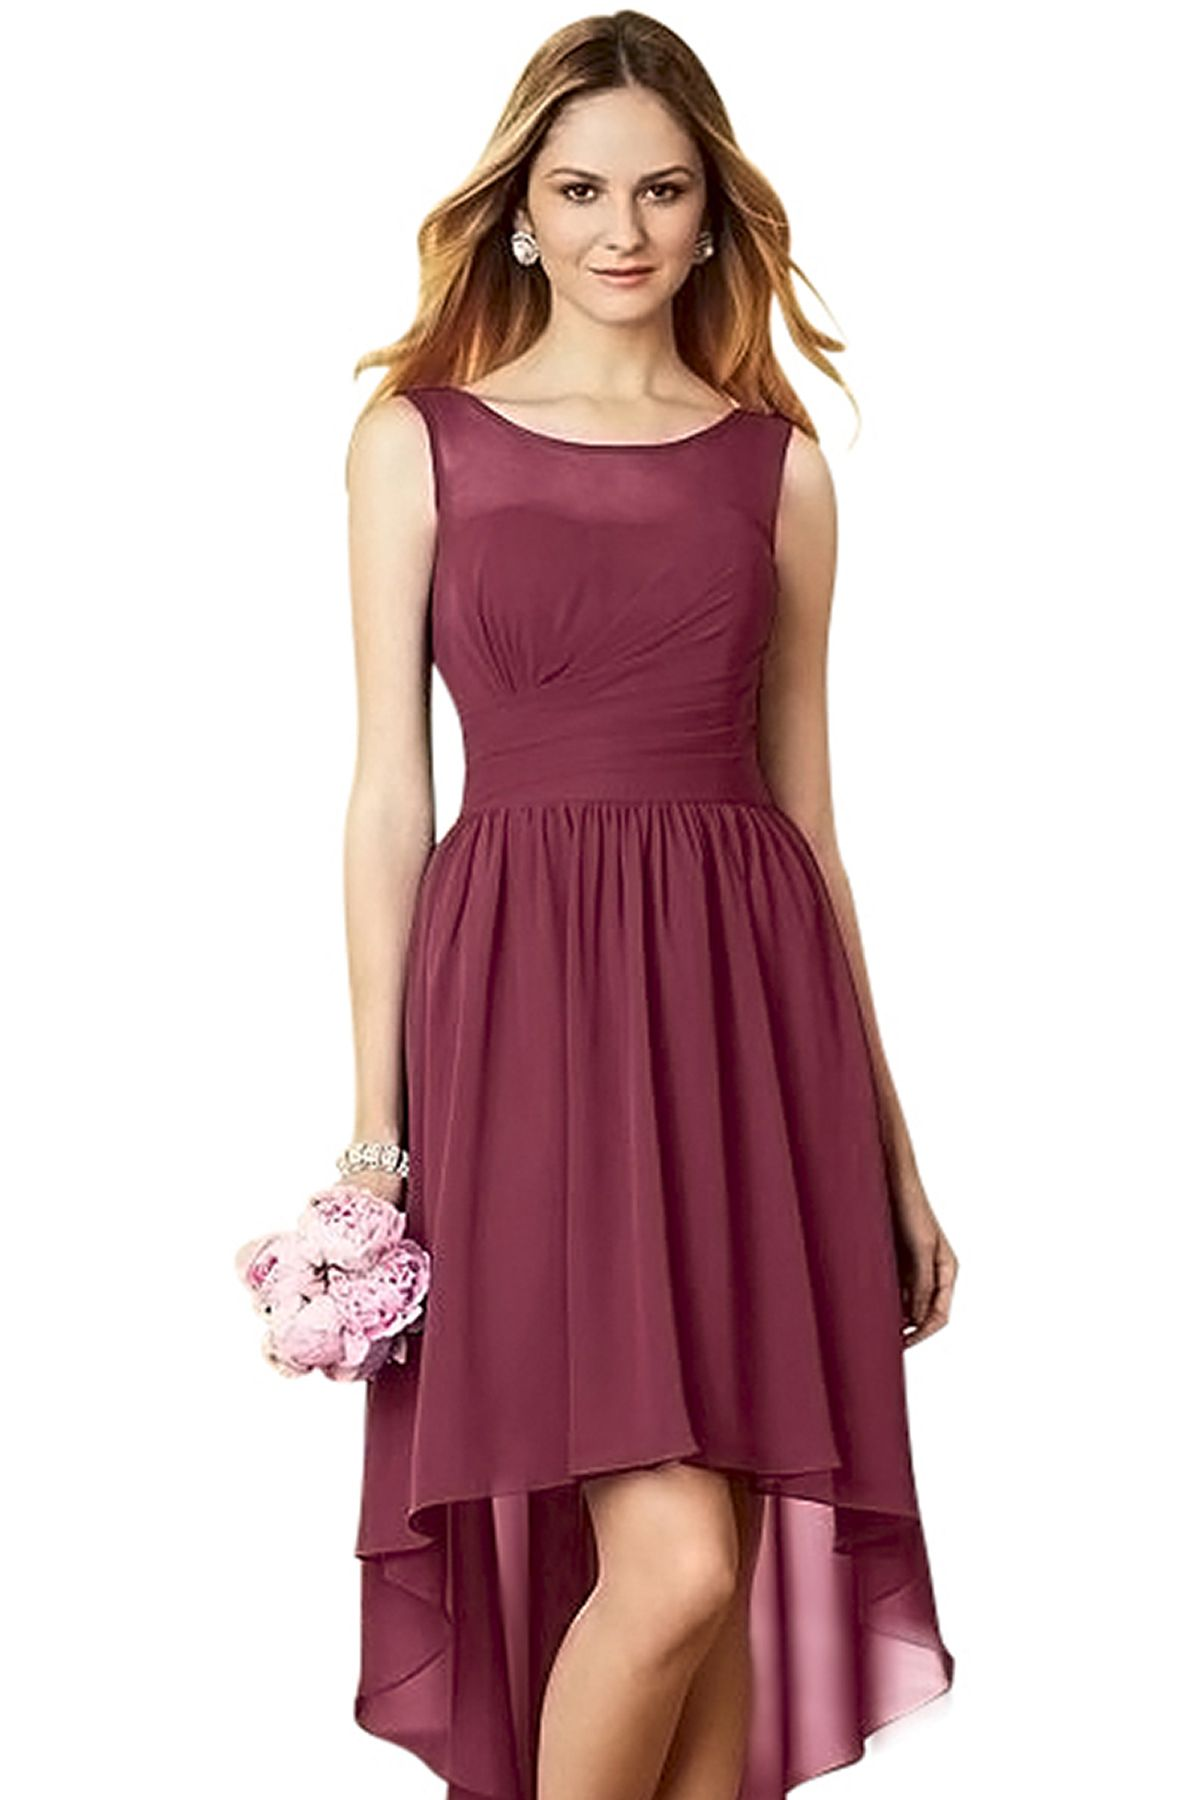 Alfred angelo 7298 s bridesmaid dress in wine in chiffon wedding alfred angelo 7298 s bridesmaid dress in wine in chiffon ombrellifo Gallery